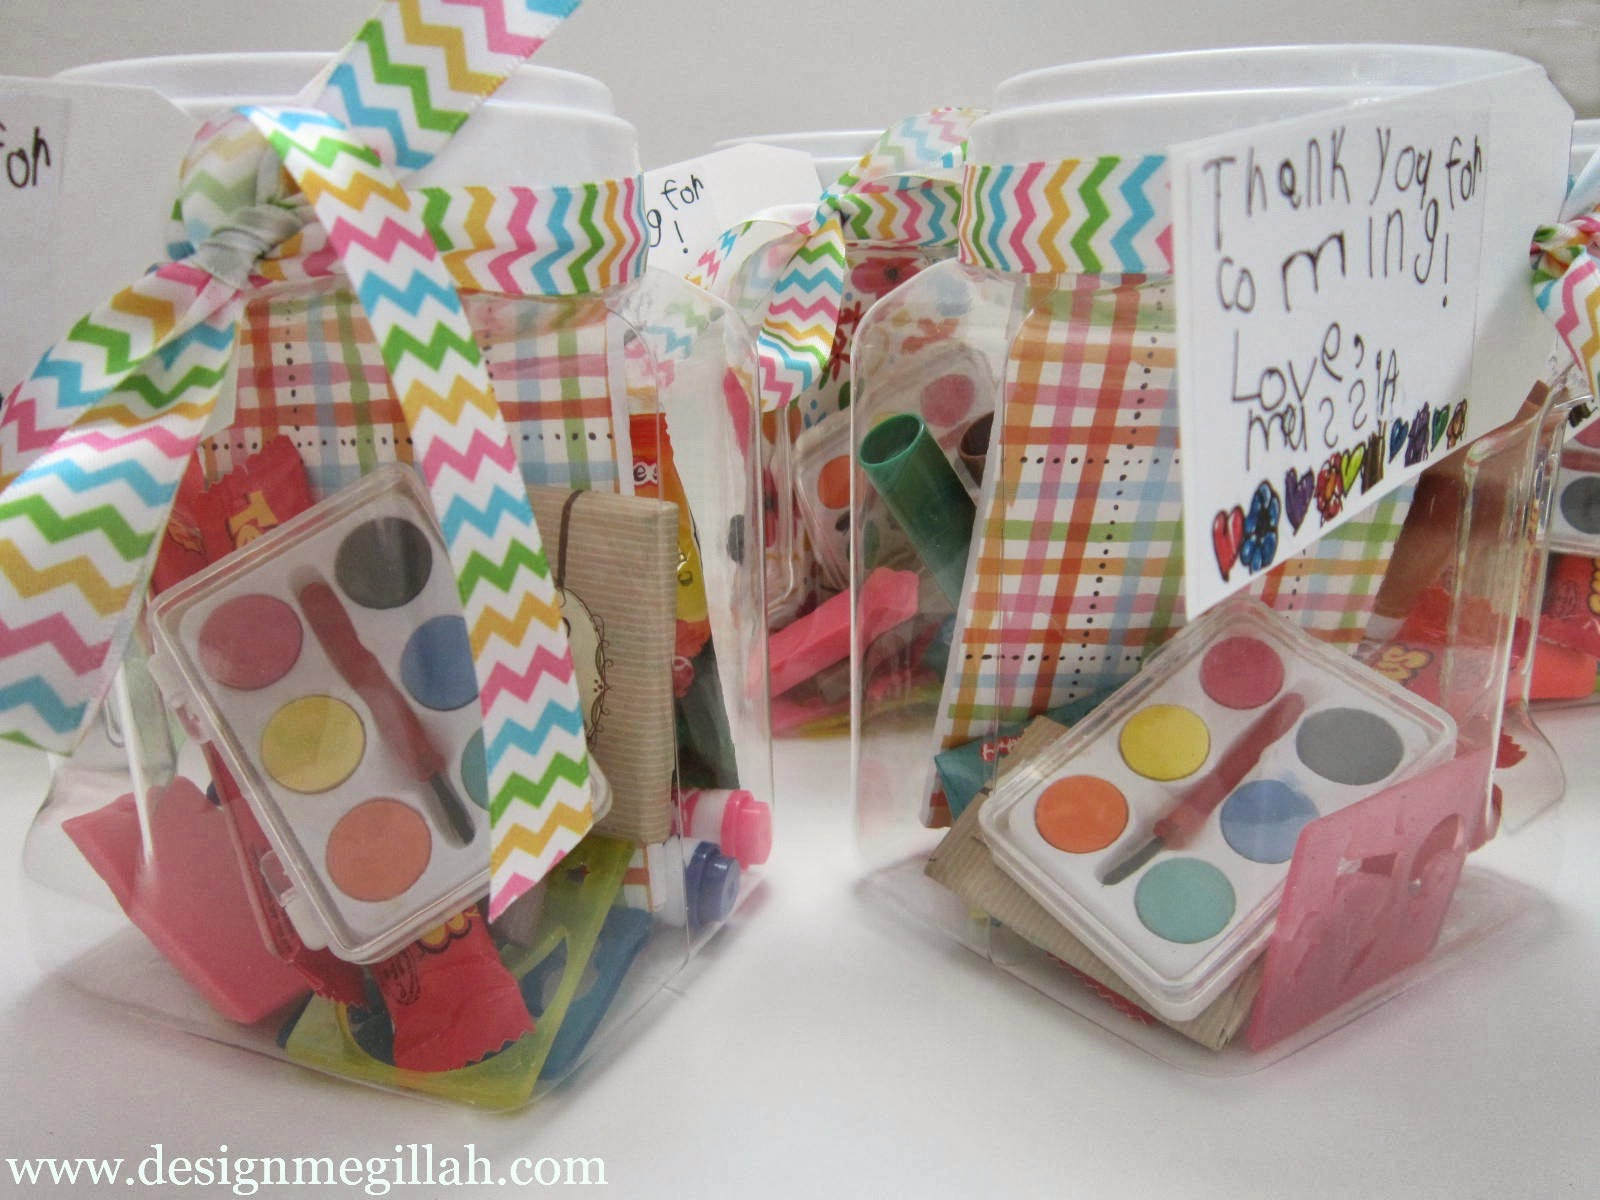 Design Megillah Favors for an Art Birthday Party ~ 215751_Birthday Party Ideas Zurich